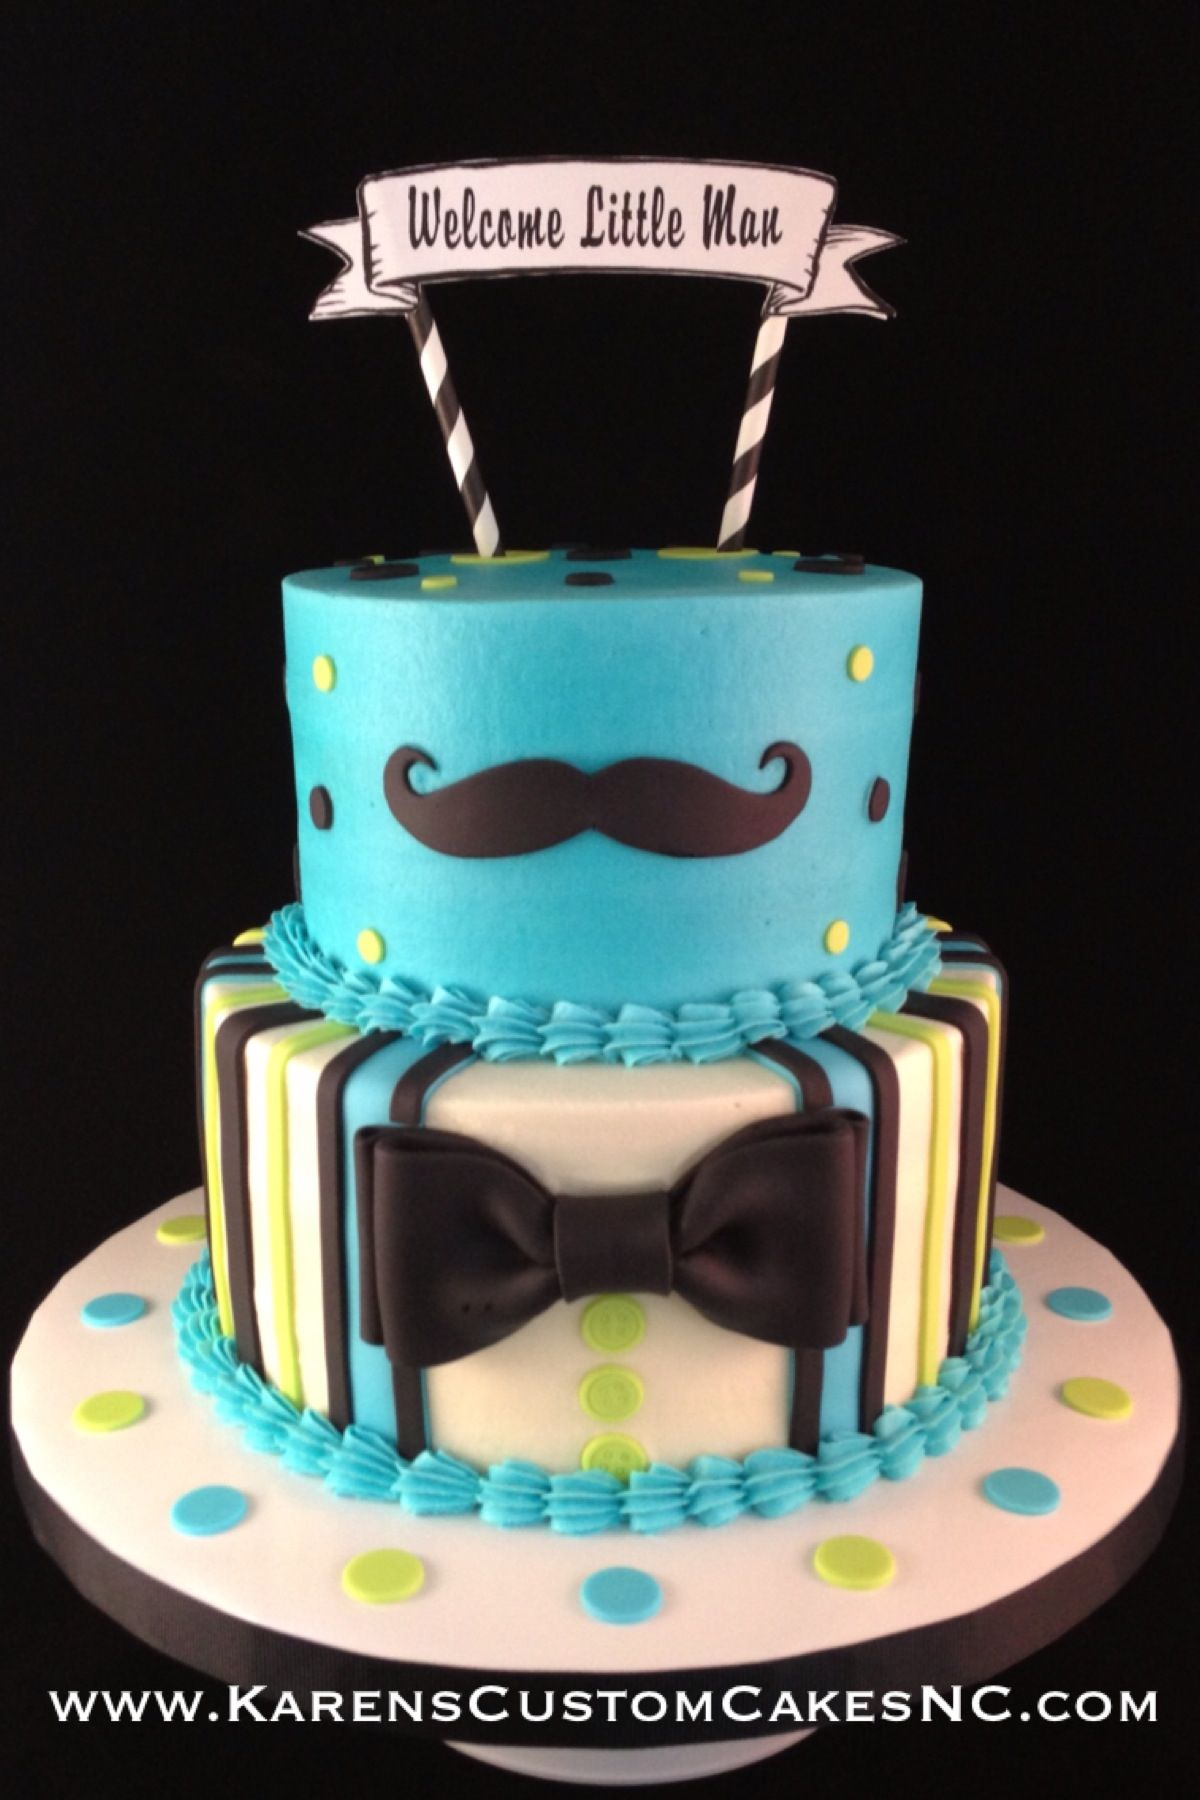 little man themed baby shower cake 8 6 buttercream cake w fondant